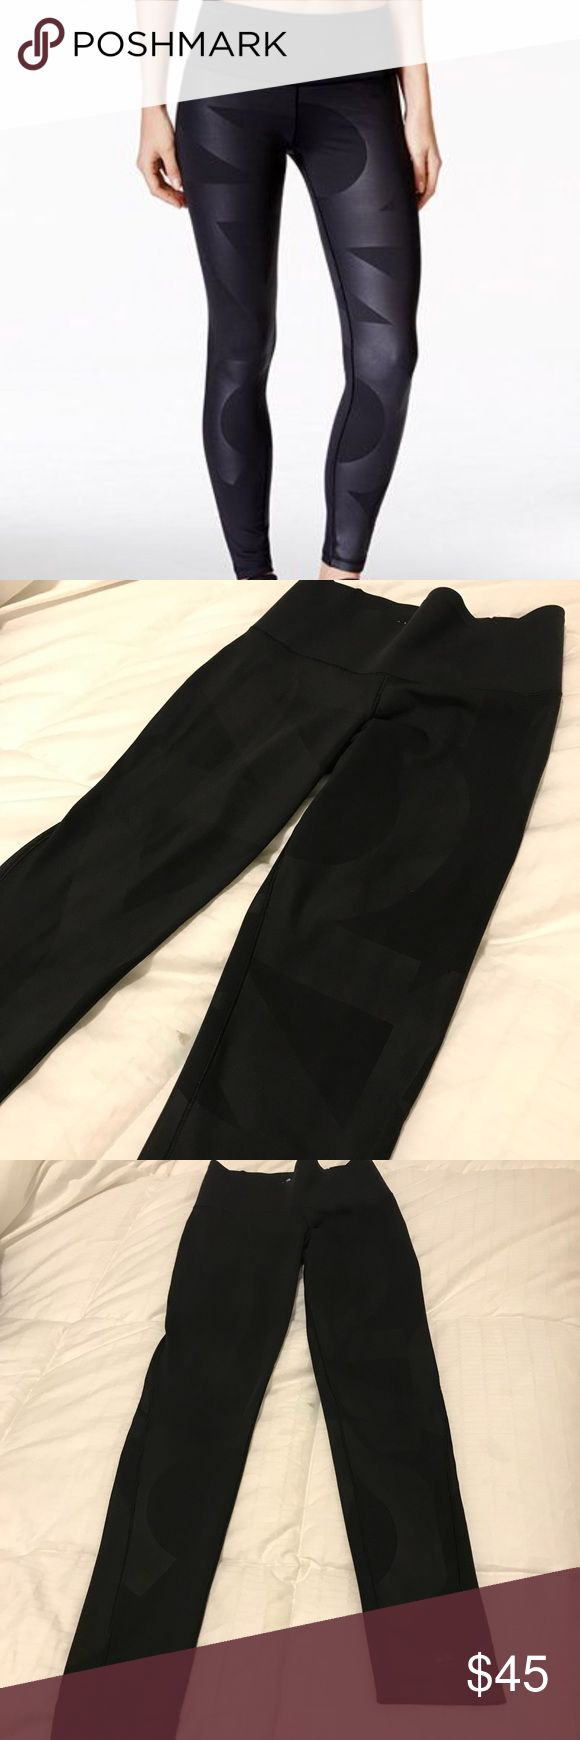 "EUC Adidas Climalite Leggings, Black Geometric EUC Adidas Climalite Leggings. Black on black with semi shiny large geometric design. Moisture wicking fabric. Thick waistband. Measurements when laying flat: waist 12.25"", rise 9"", inseam 25"". They show no signs of wear other than fading of the label printed inside. I have an allergy sensitivity to Lycra and elastic and these make my legs itch so I'm selling. The tag is cut out (due to itching). They have been worn less than 10 times. adidas…"